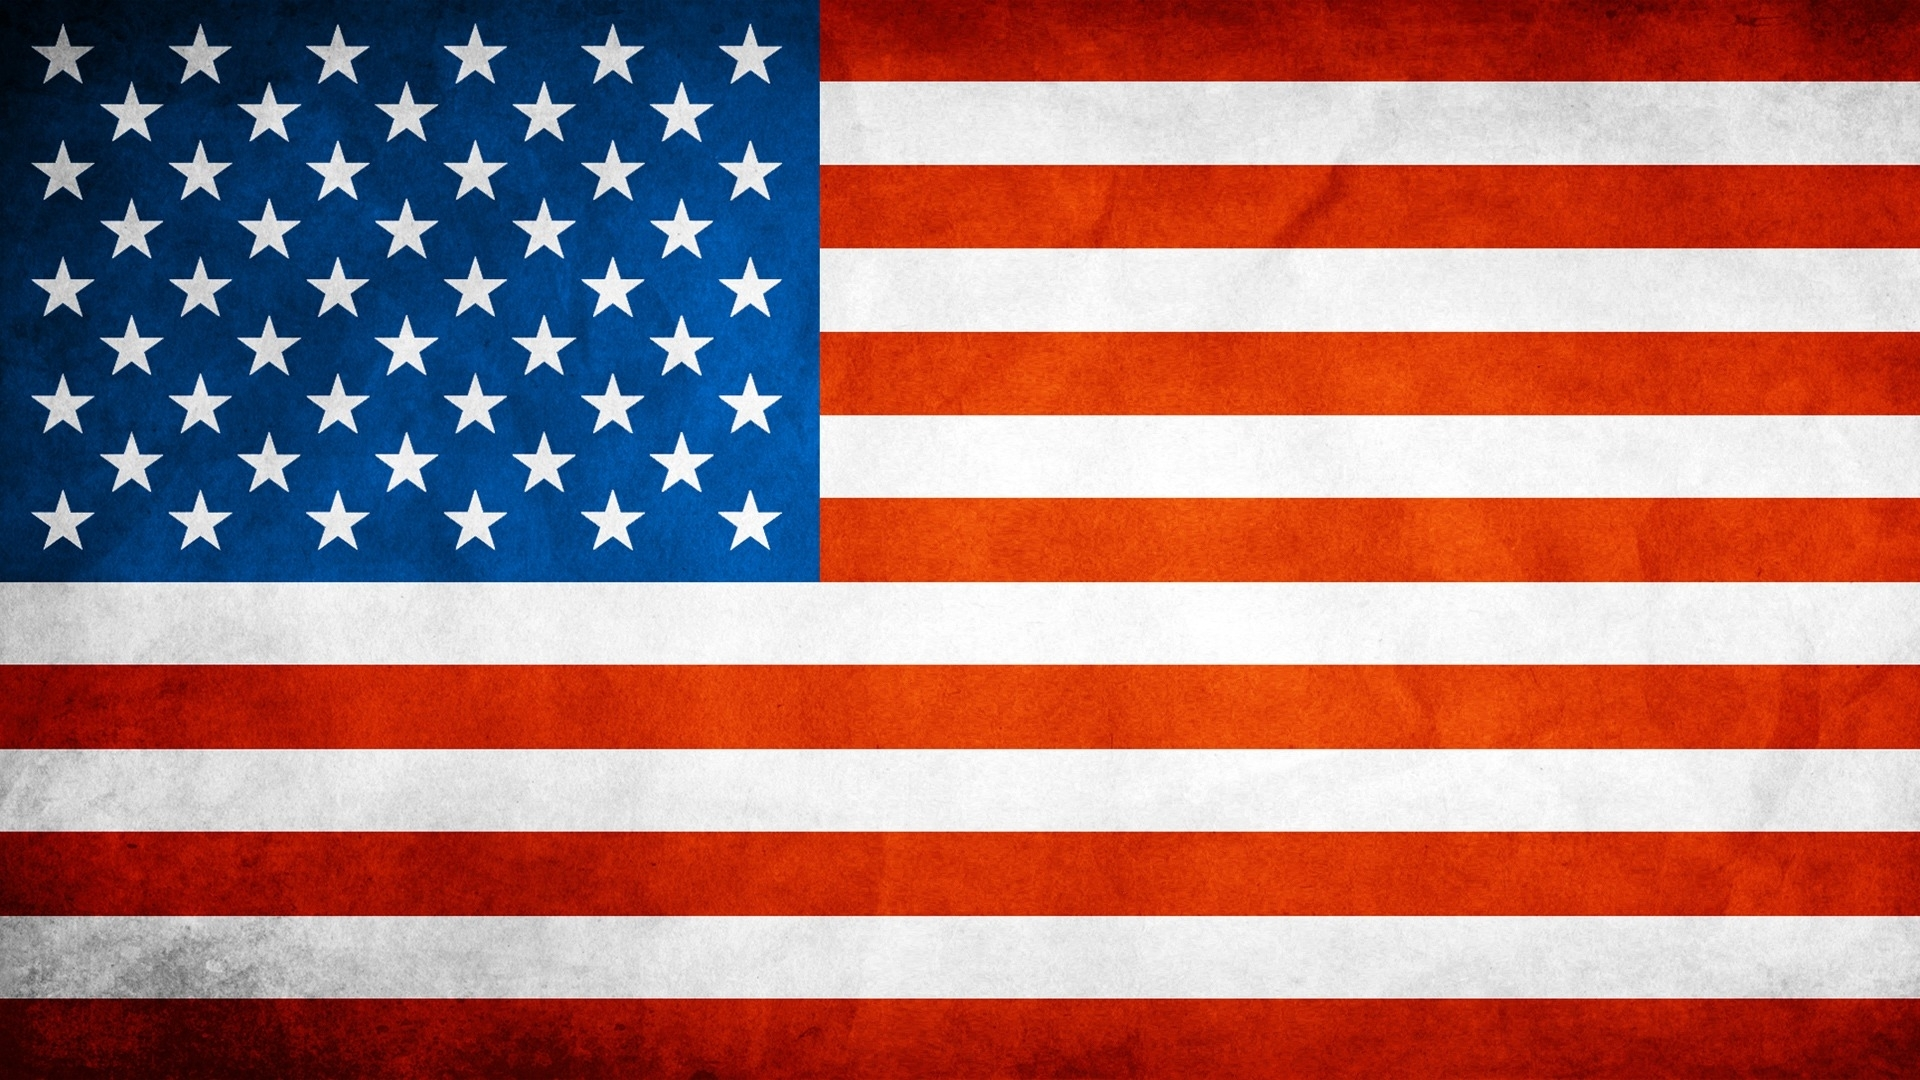 usa flag wallpaper united states world wallpapers in jpg format for